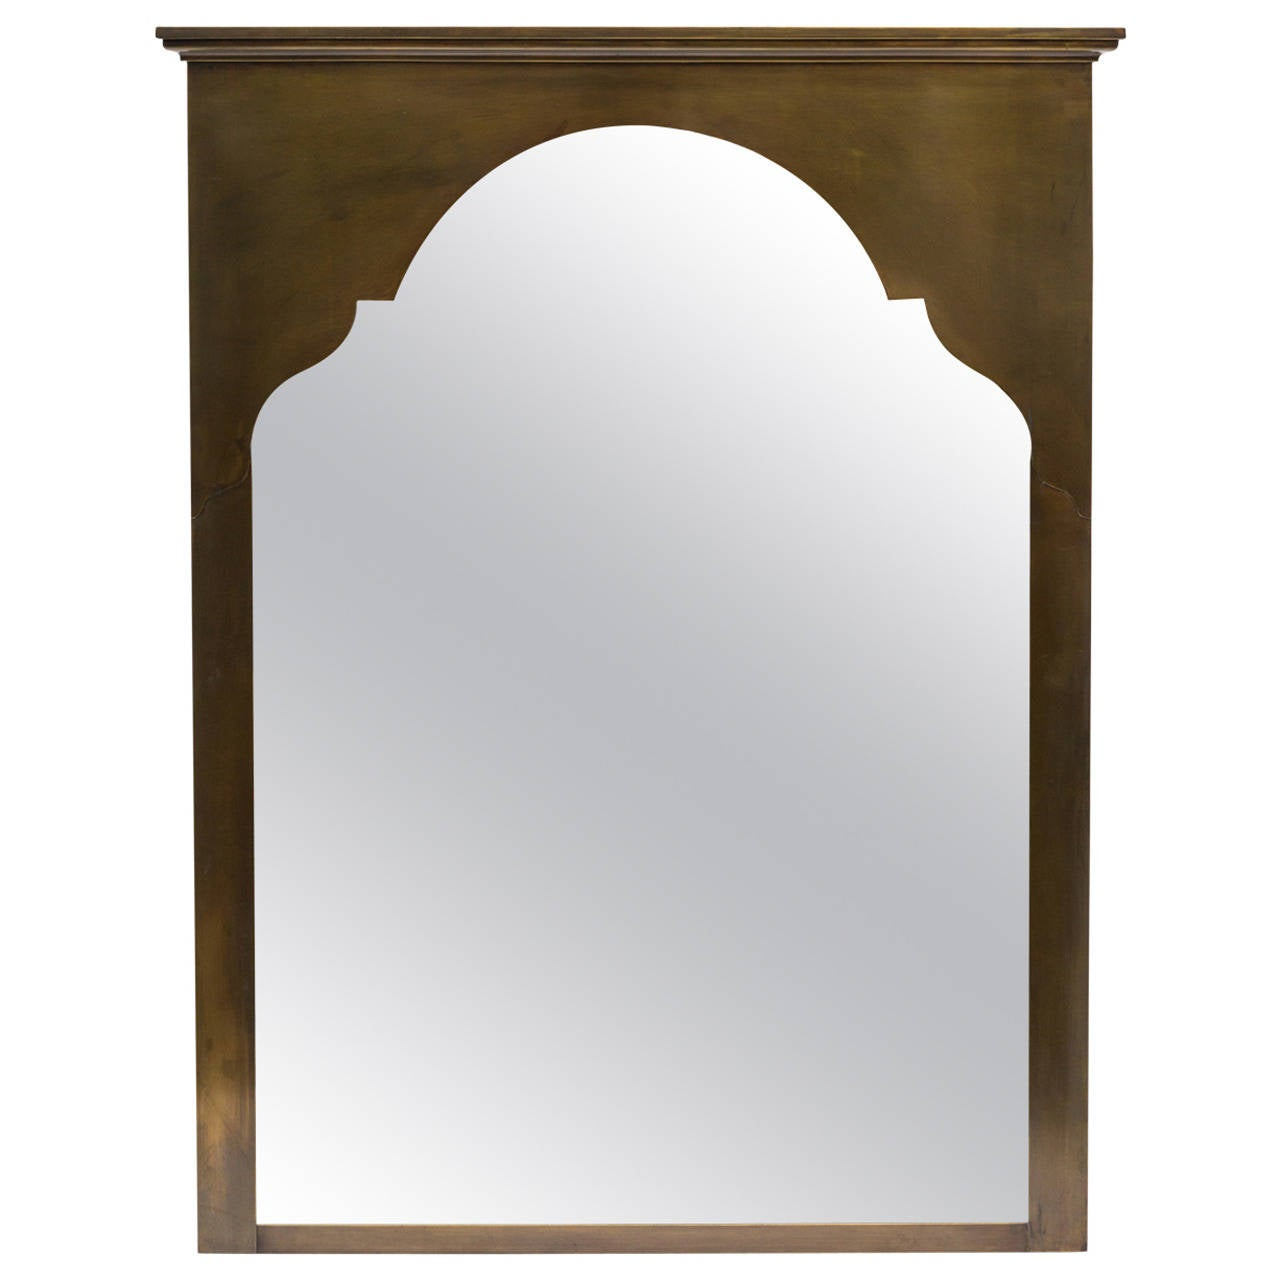 Large brass moroccan style wall mirror for sale at 1stdibs for Mirror large